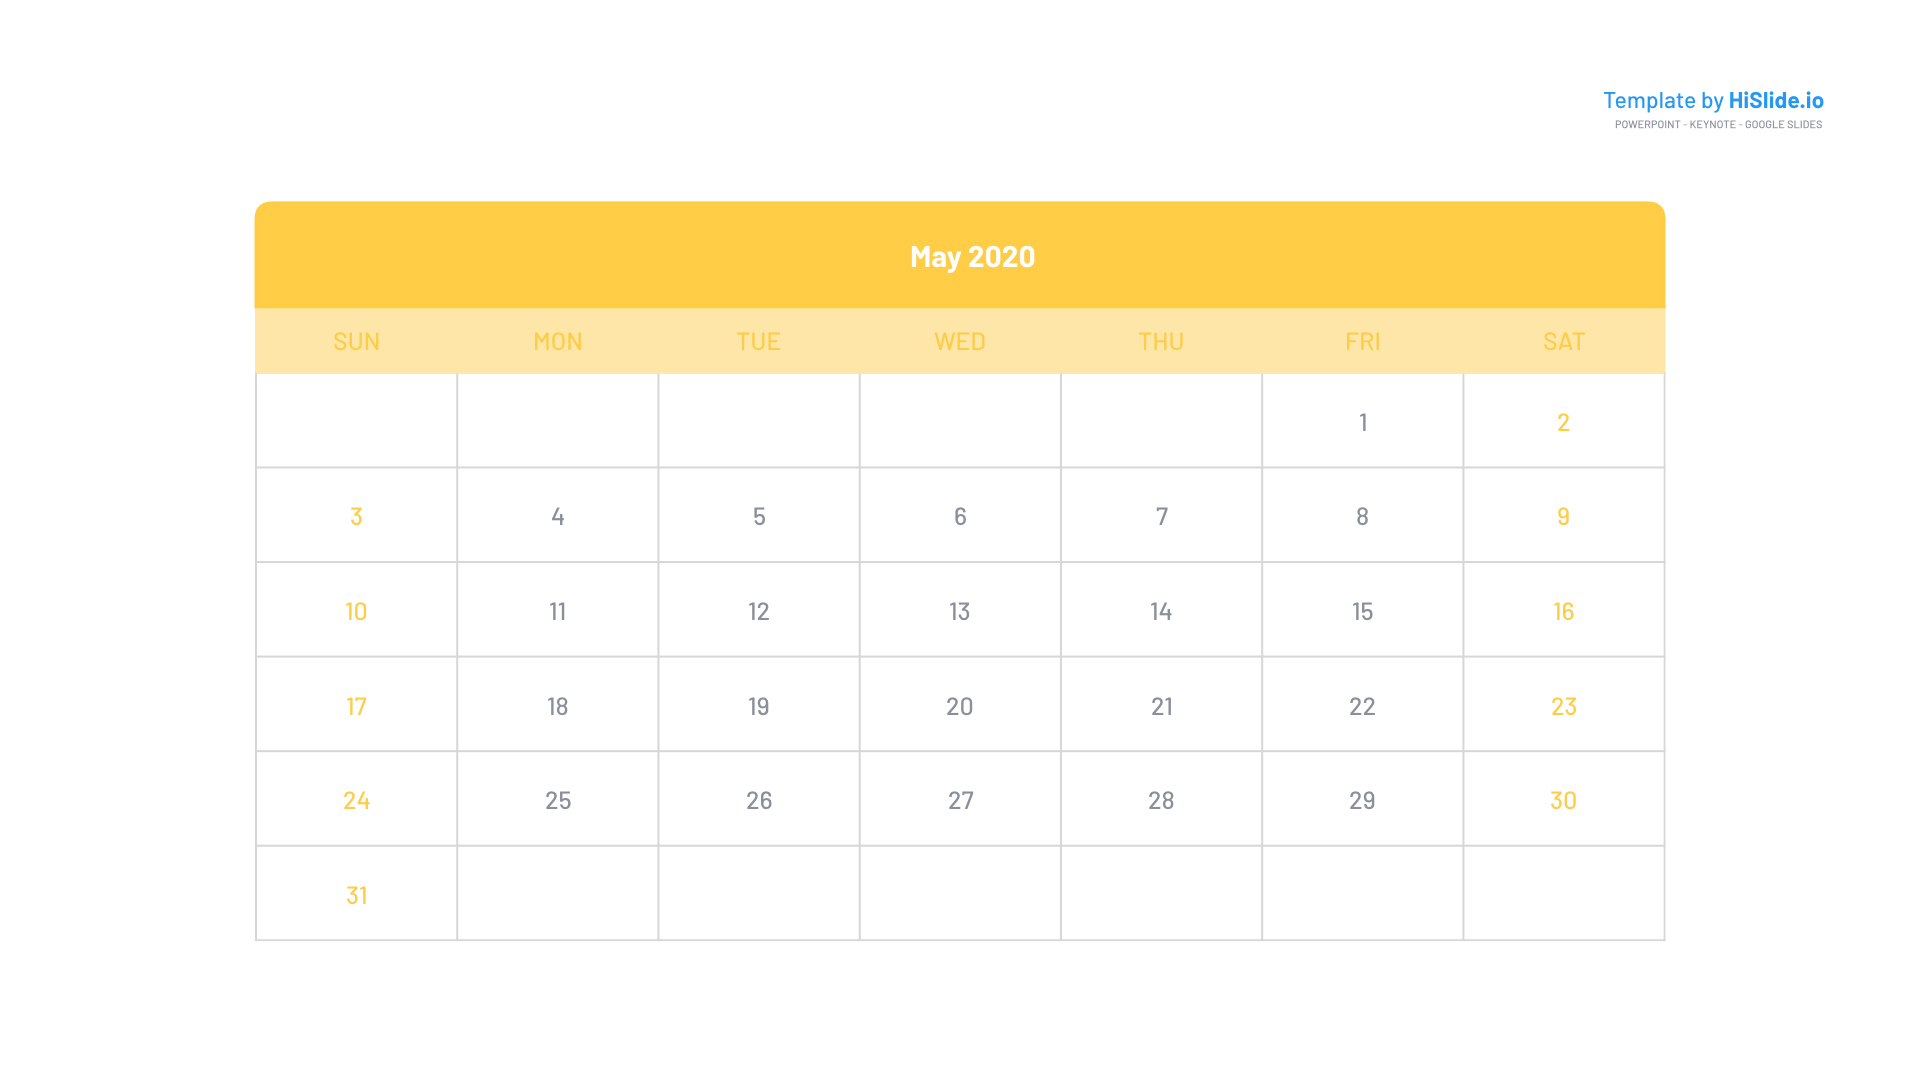 May 2020 Calendar template for Powerpoint